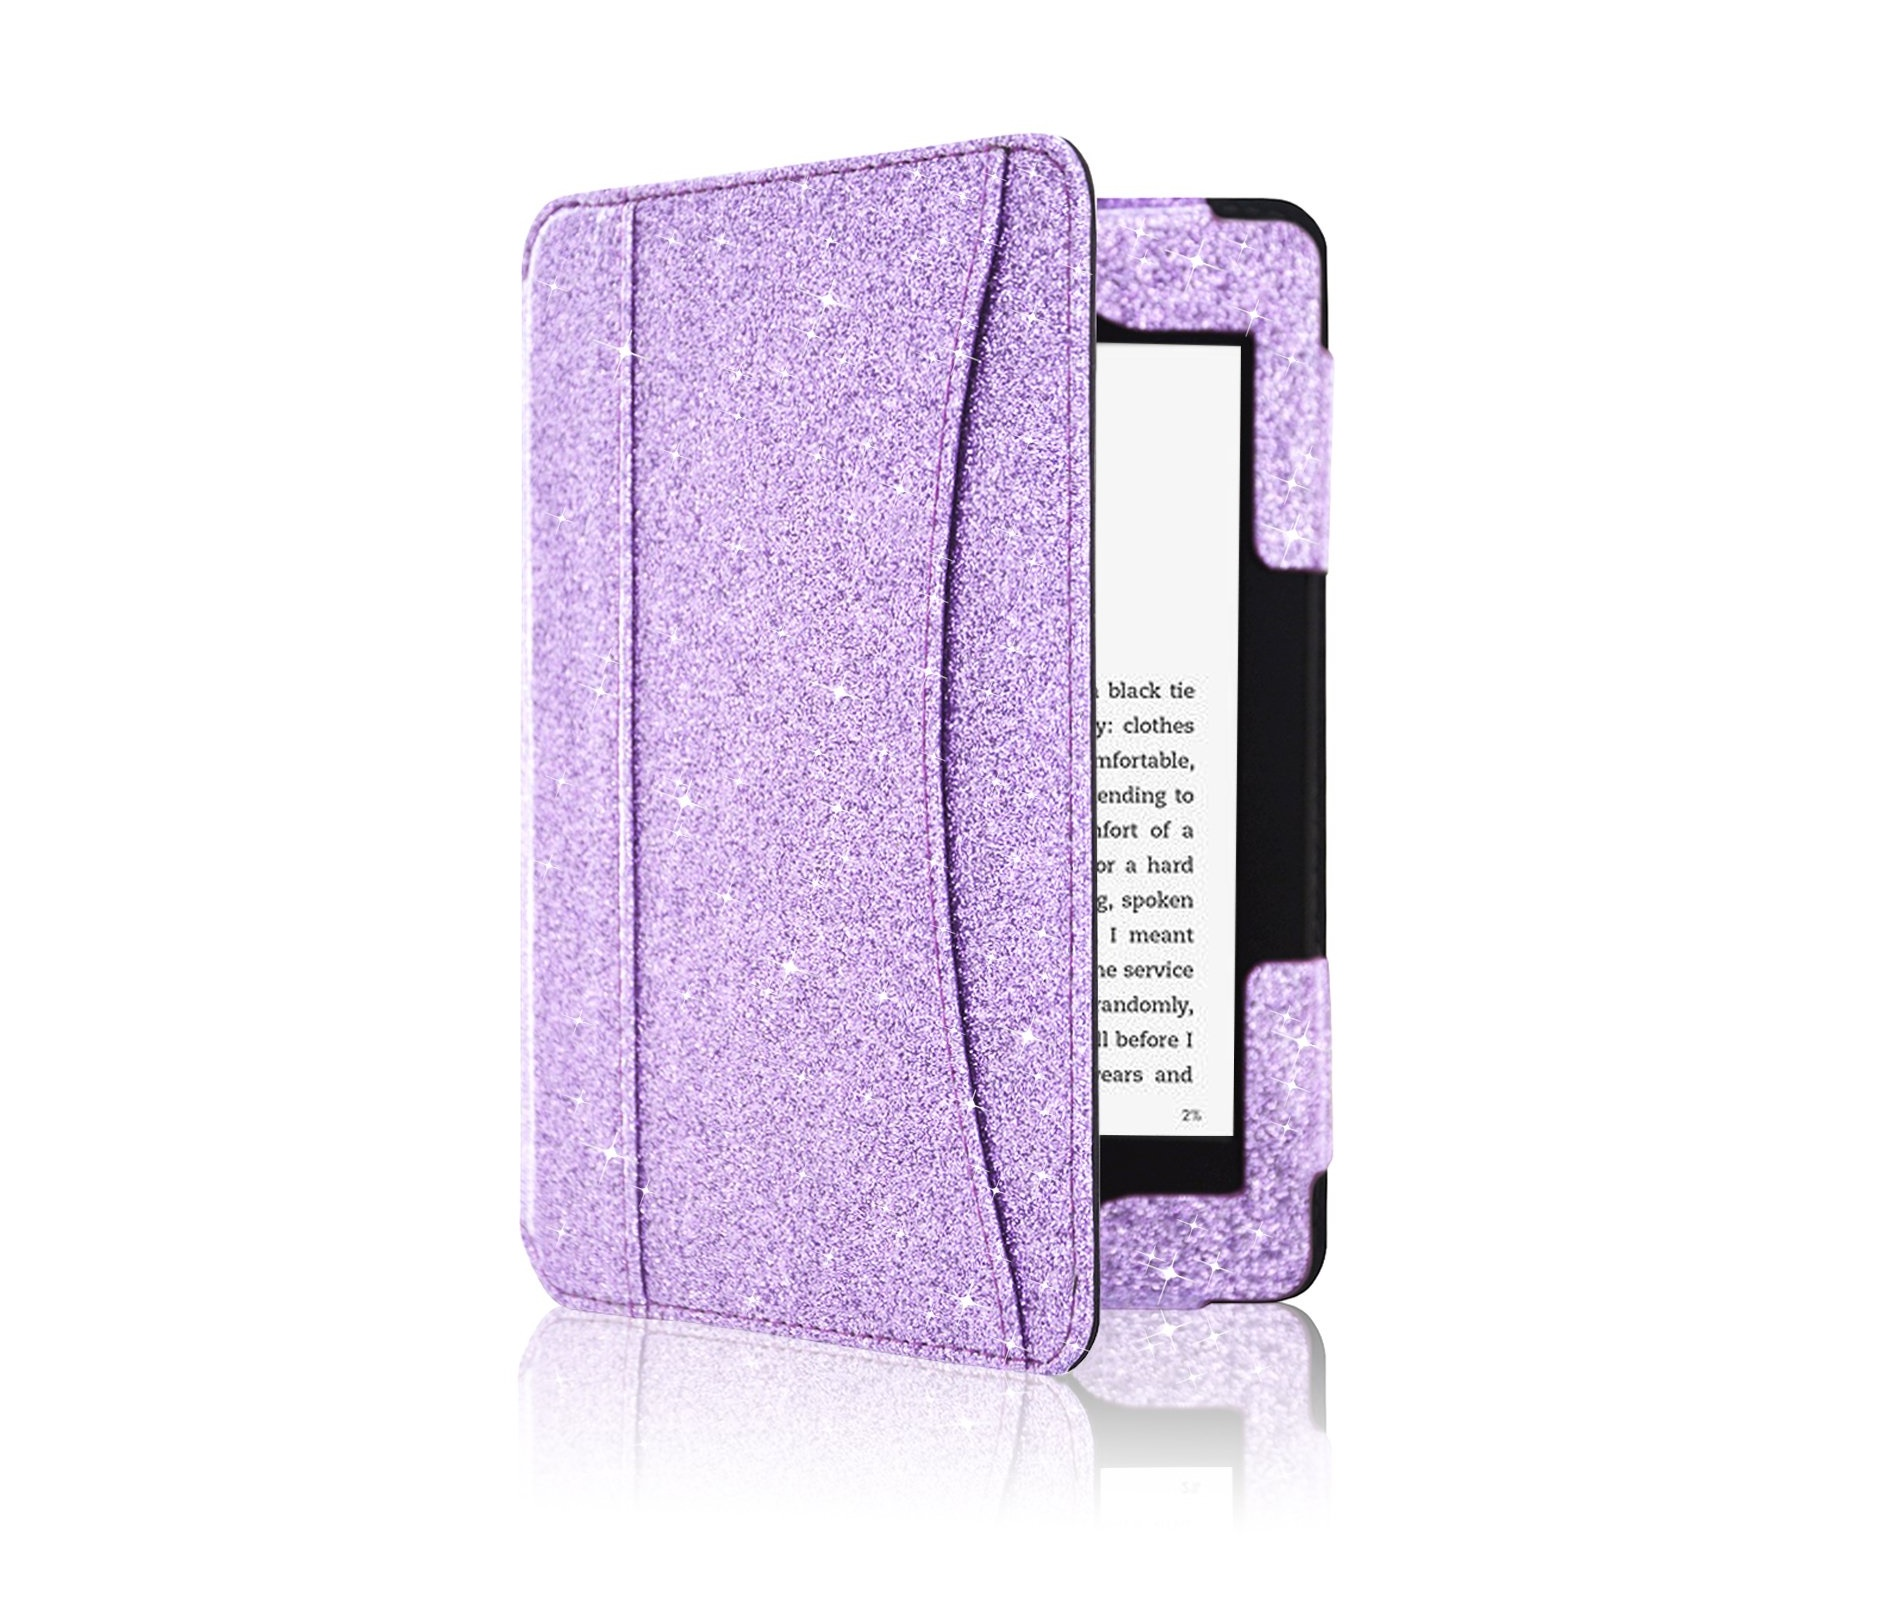 Top 5 Best Kindle Paperwhite Cases in 2020 Reviews